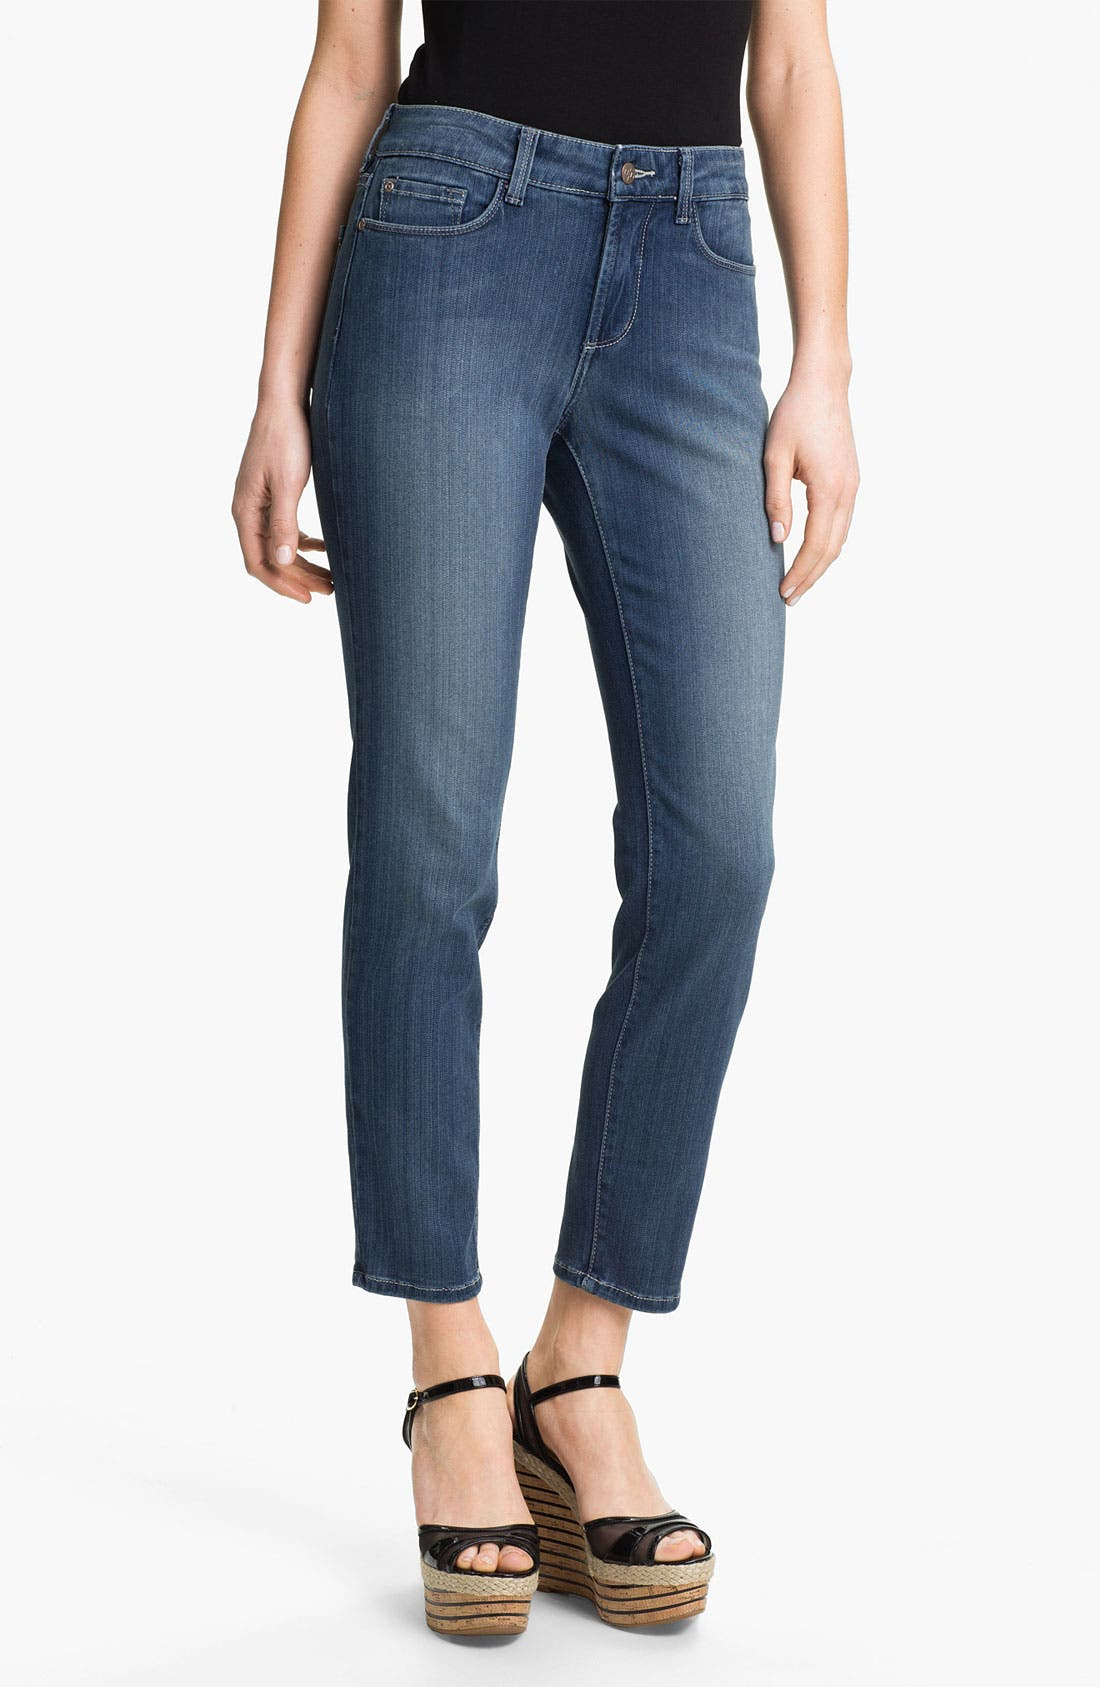 Alternate Image 1 Selected - NYDJ 'Alina' Stretch Skinny Jeans (Petite)